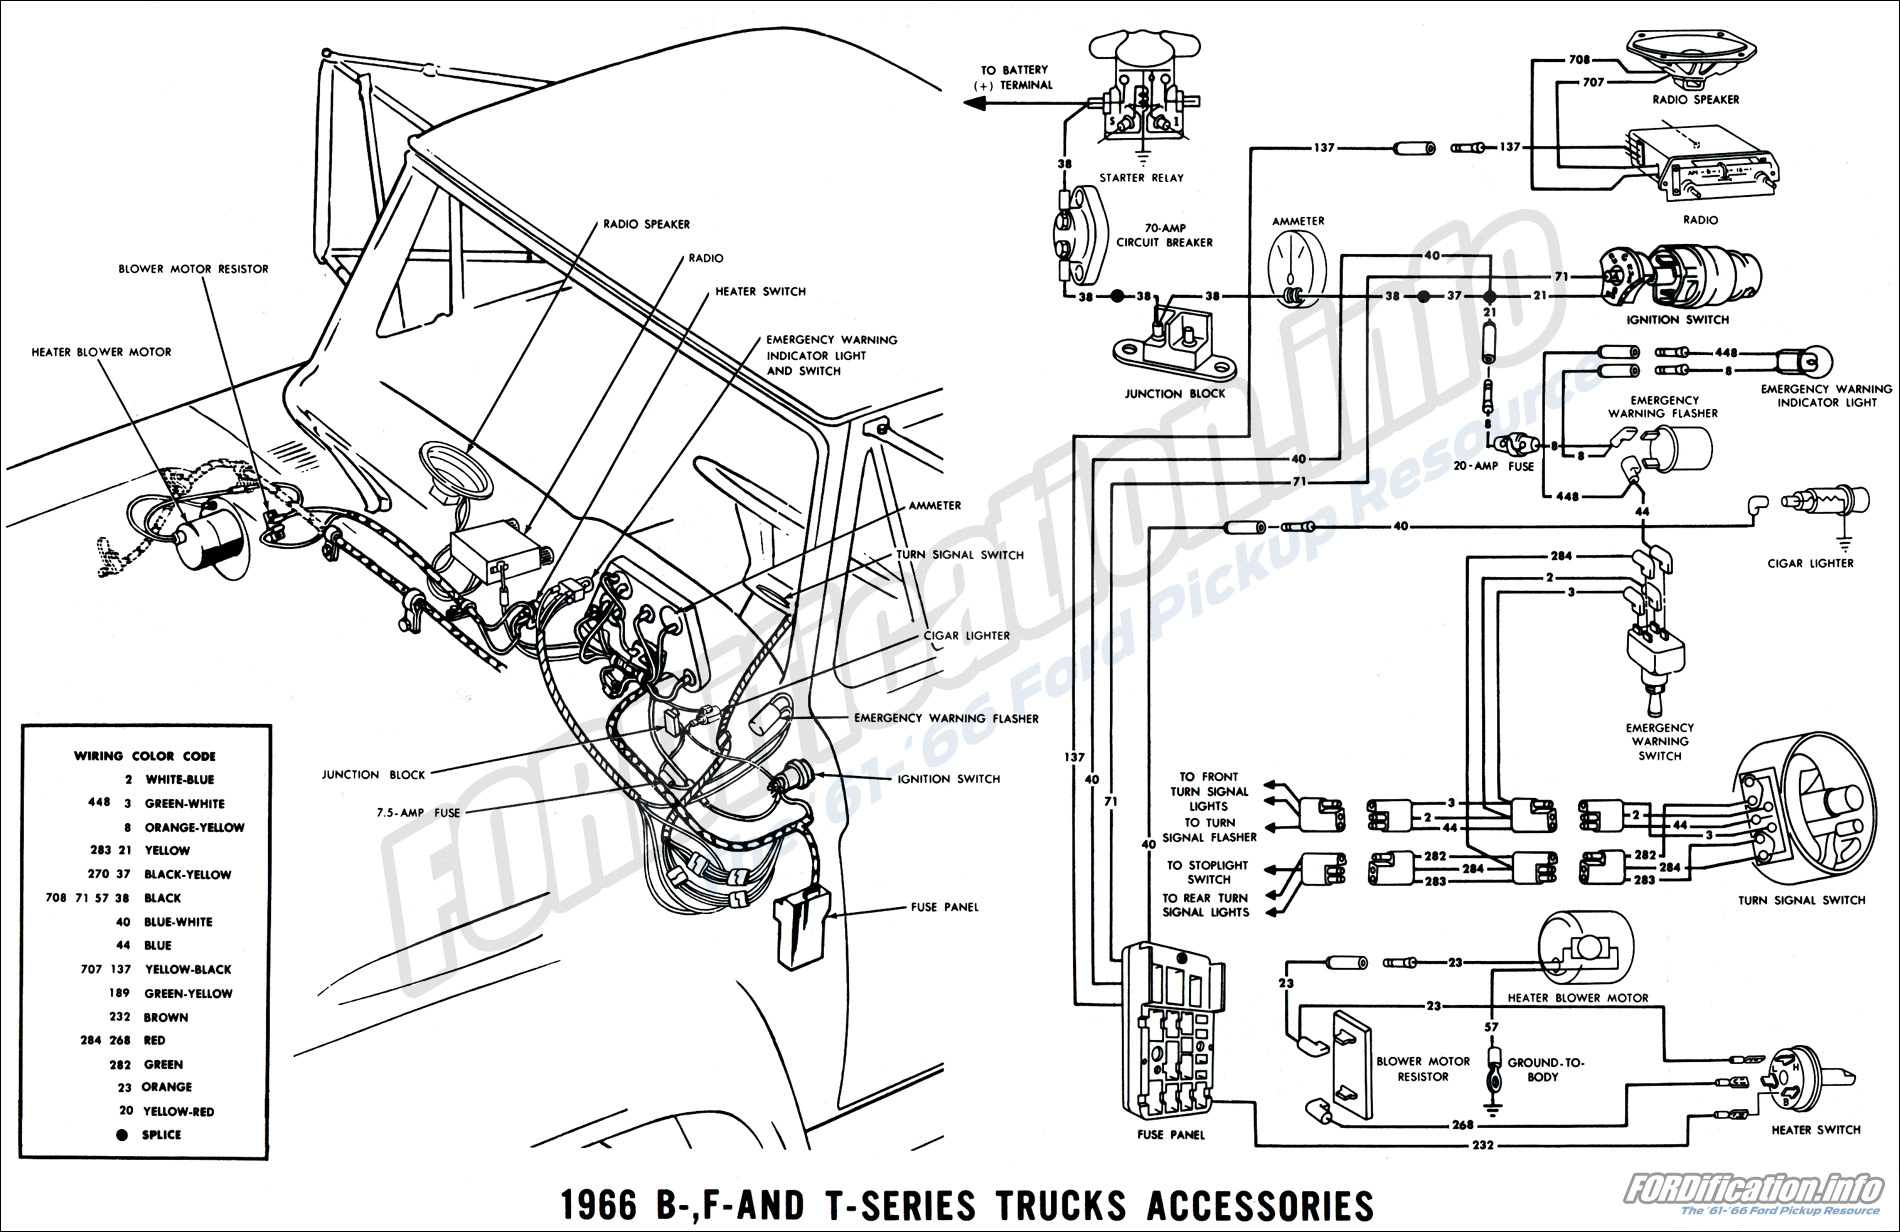 66accessories 1966 ford truck wiring diagrams fordification info the '61 '66 1966 ford f100 wiring diagram at gsmx.co